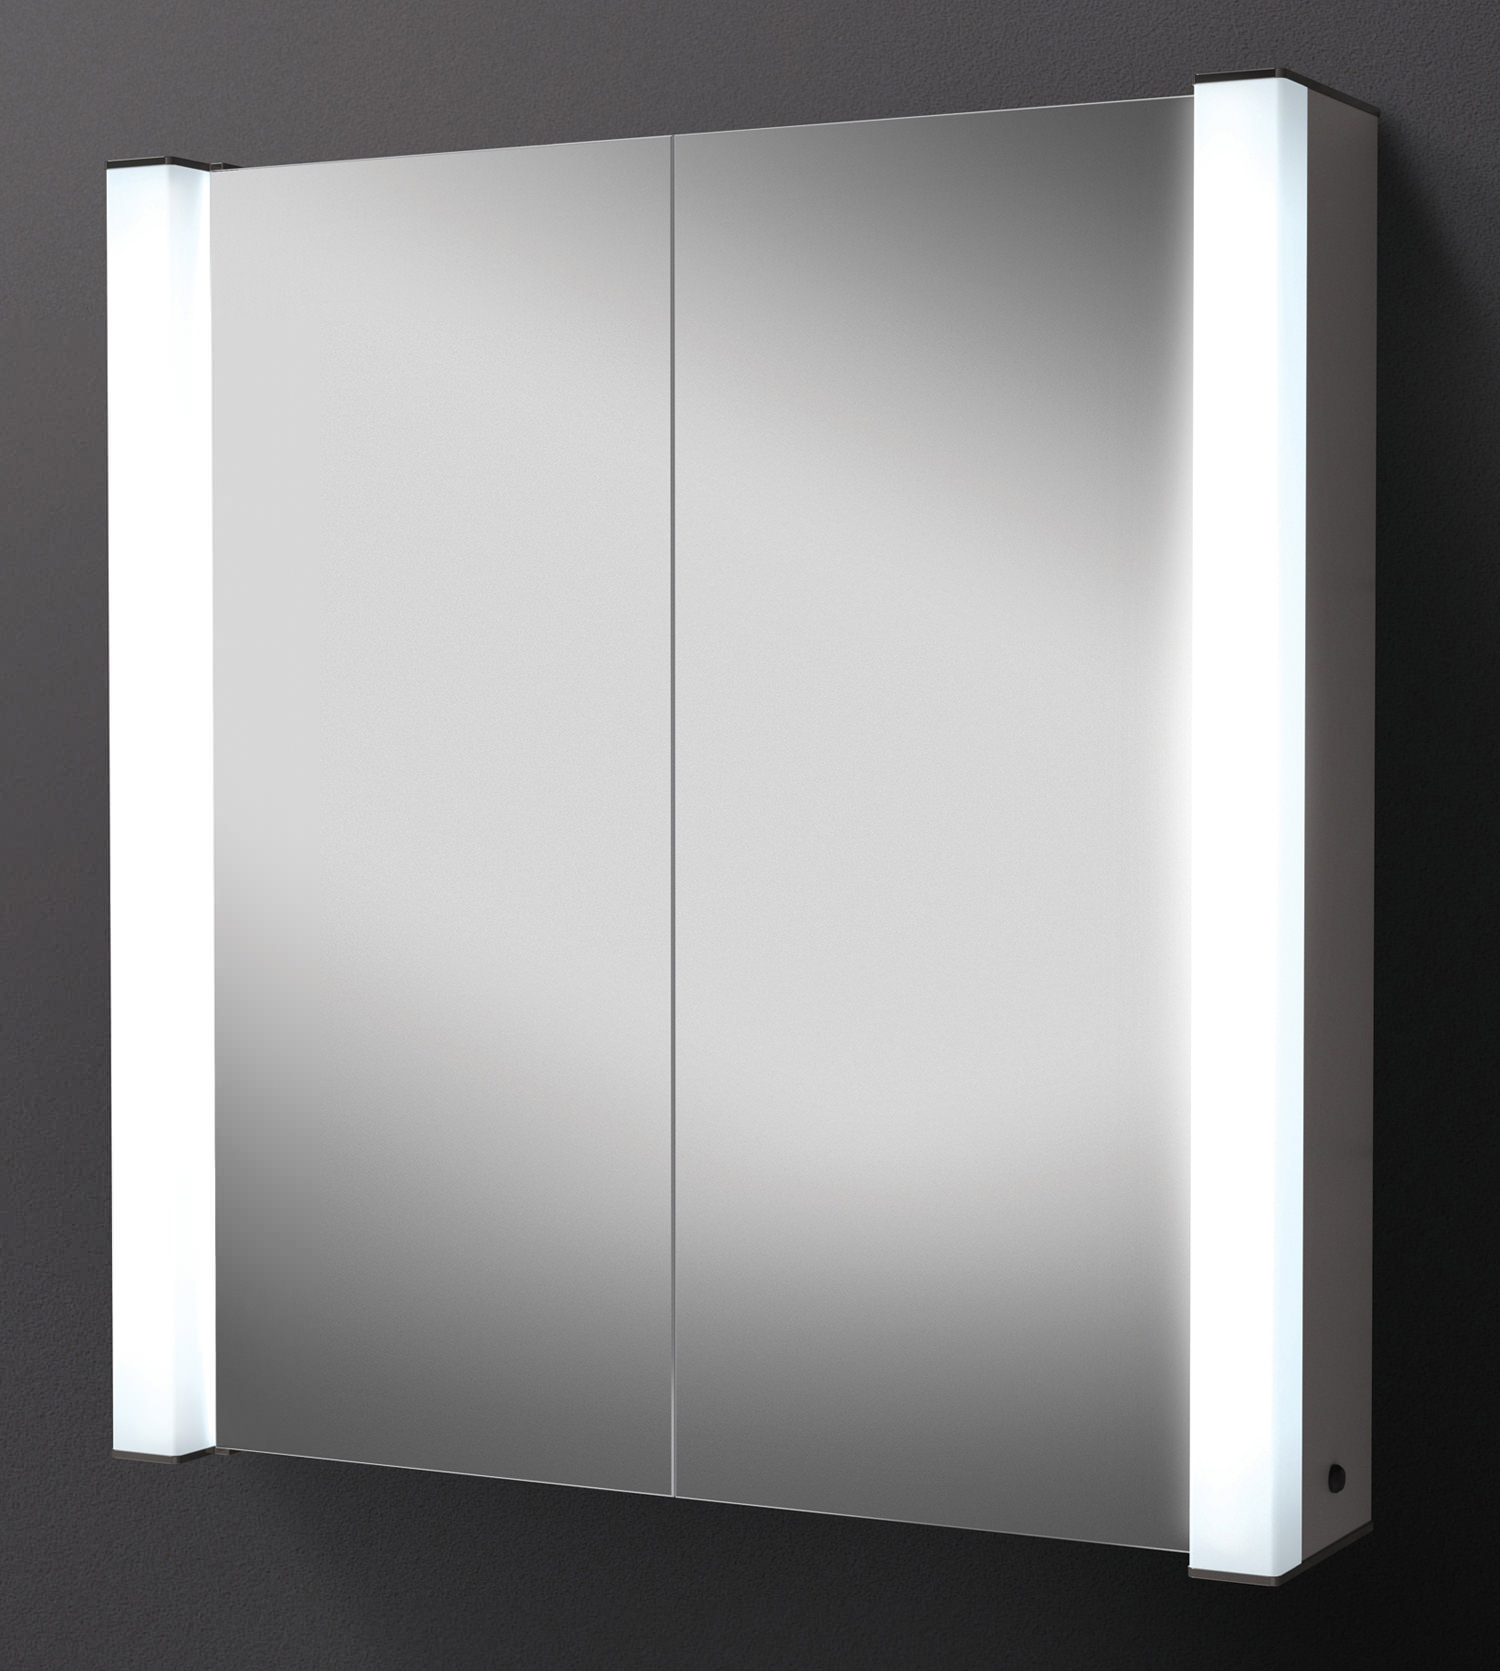 Mirrored Bathroom Cupboard Hib Photec Double Door Illuminated Aluminium Mirrored